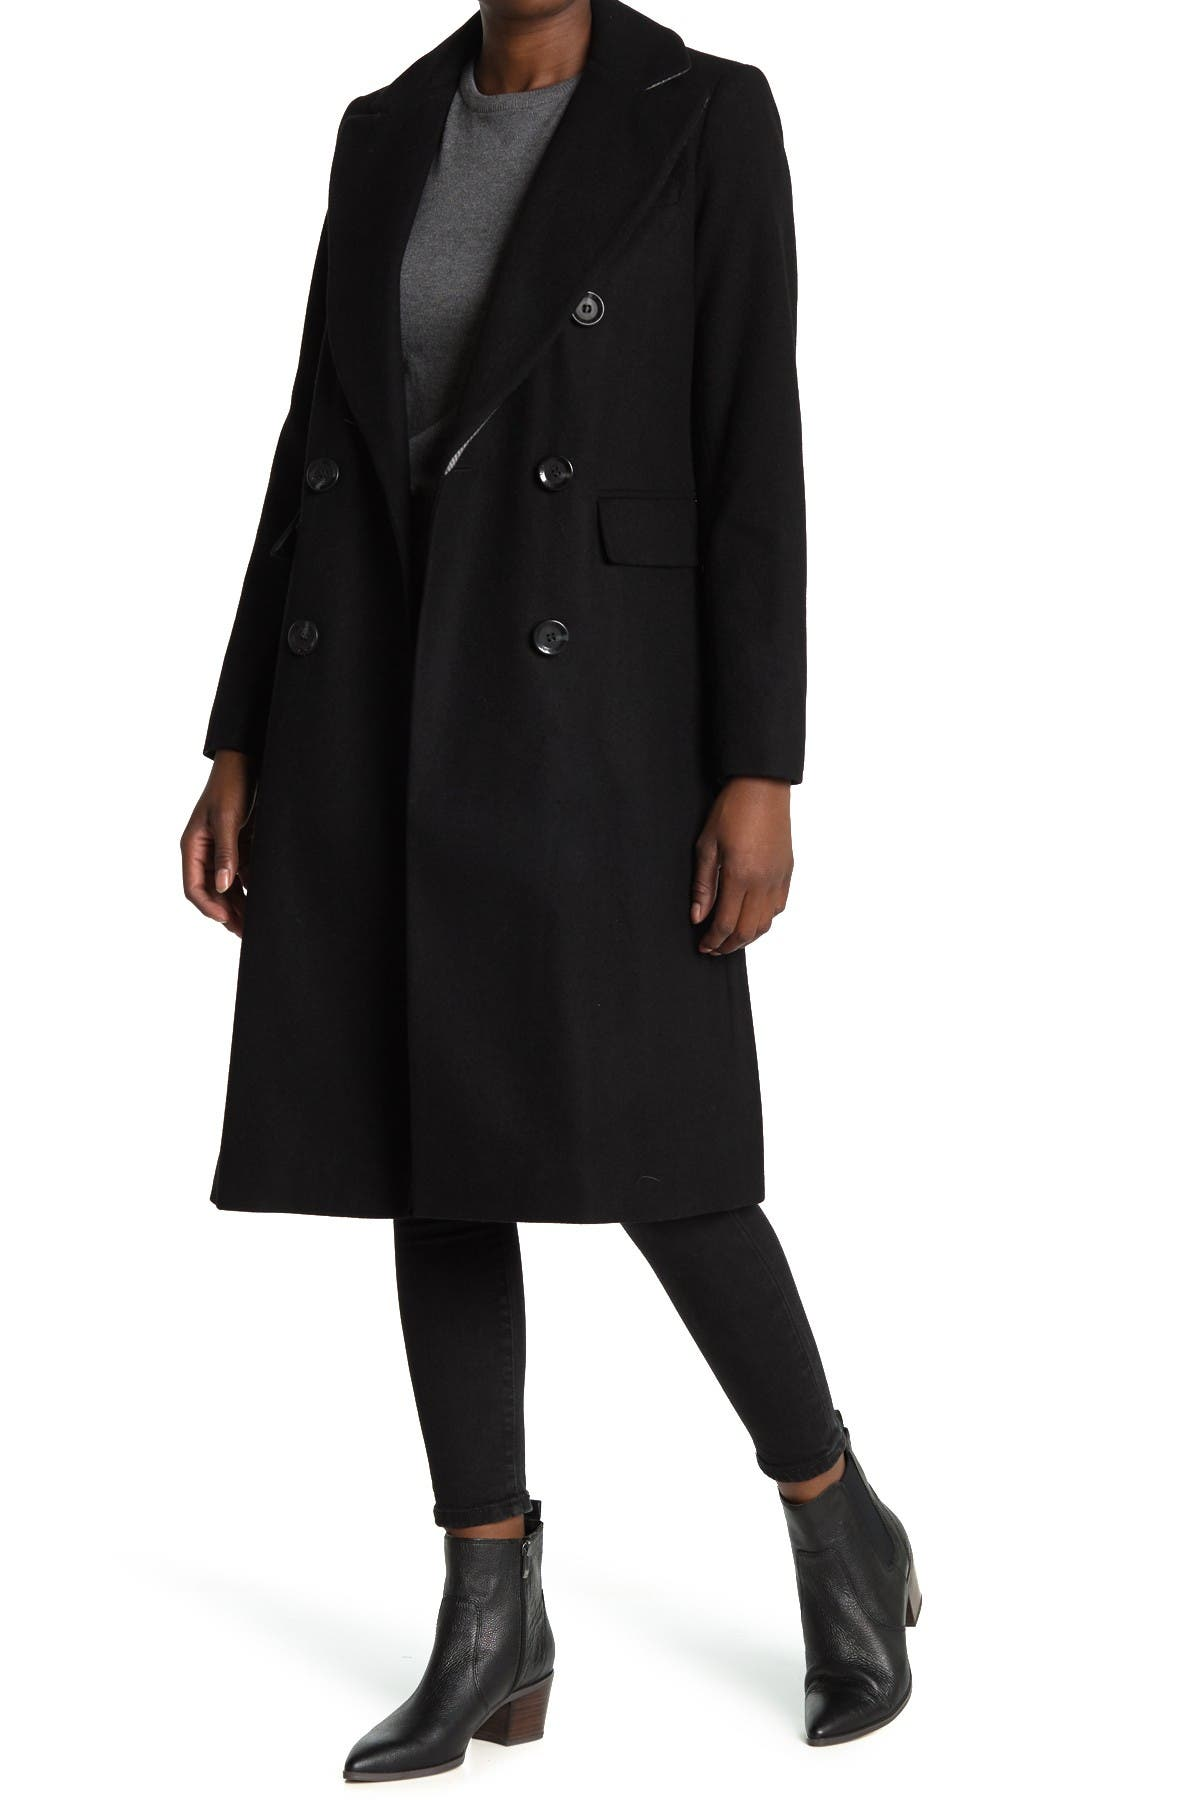 Image of Sam Edelman Double Breasted Long Coat